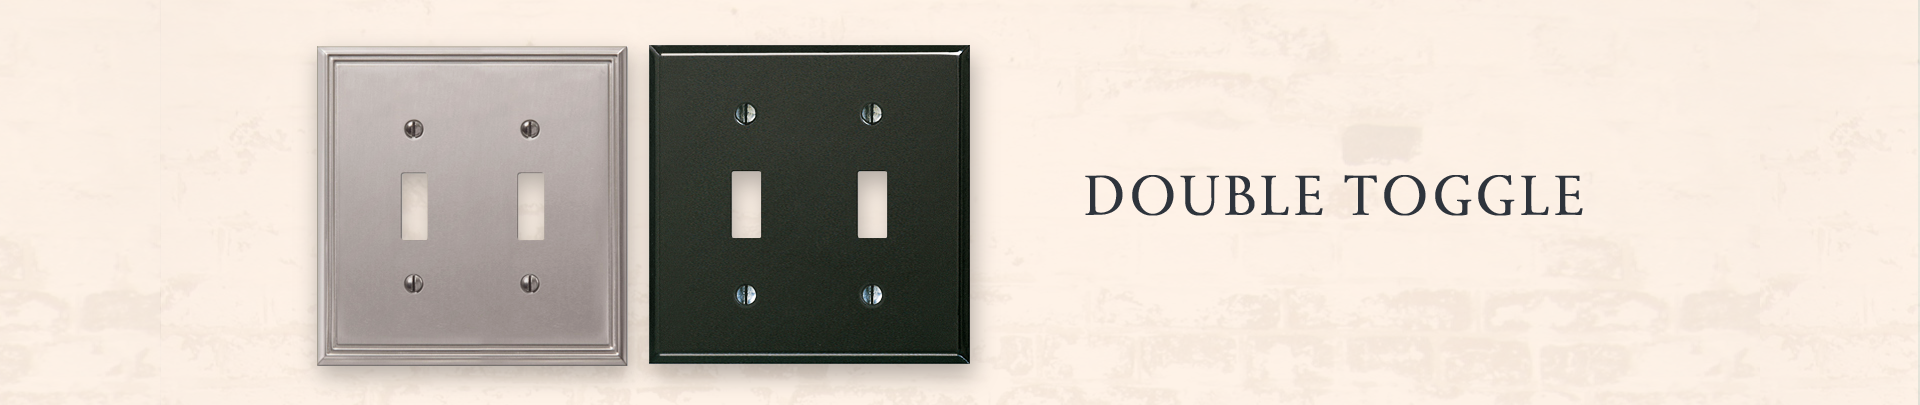 switchplates-double-toggle.png